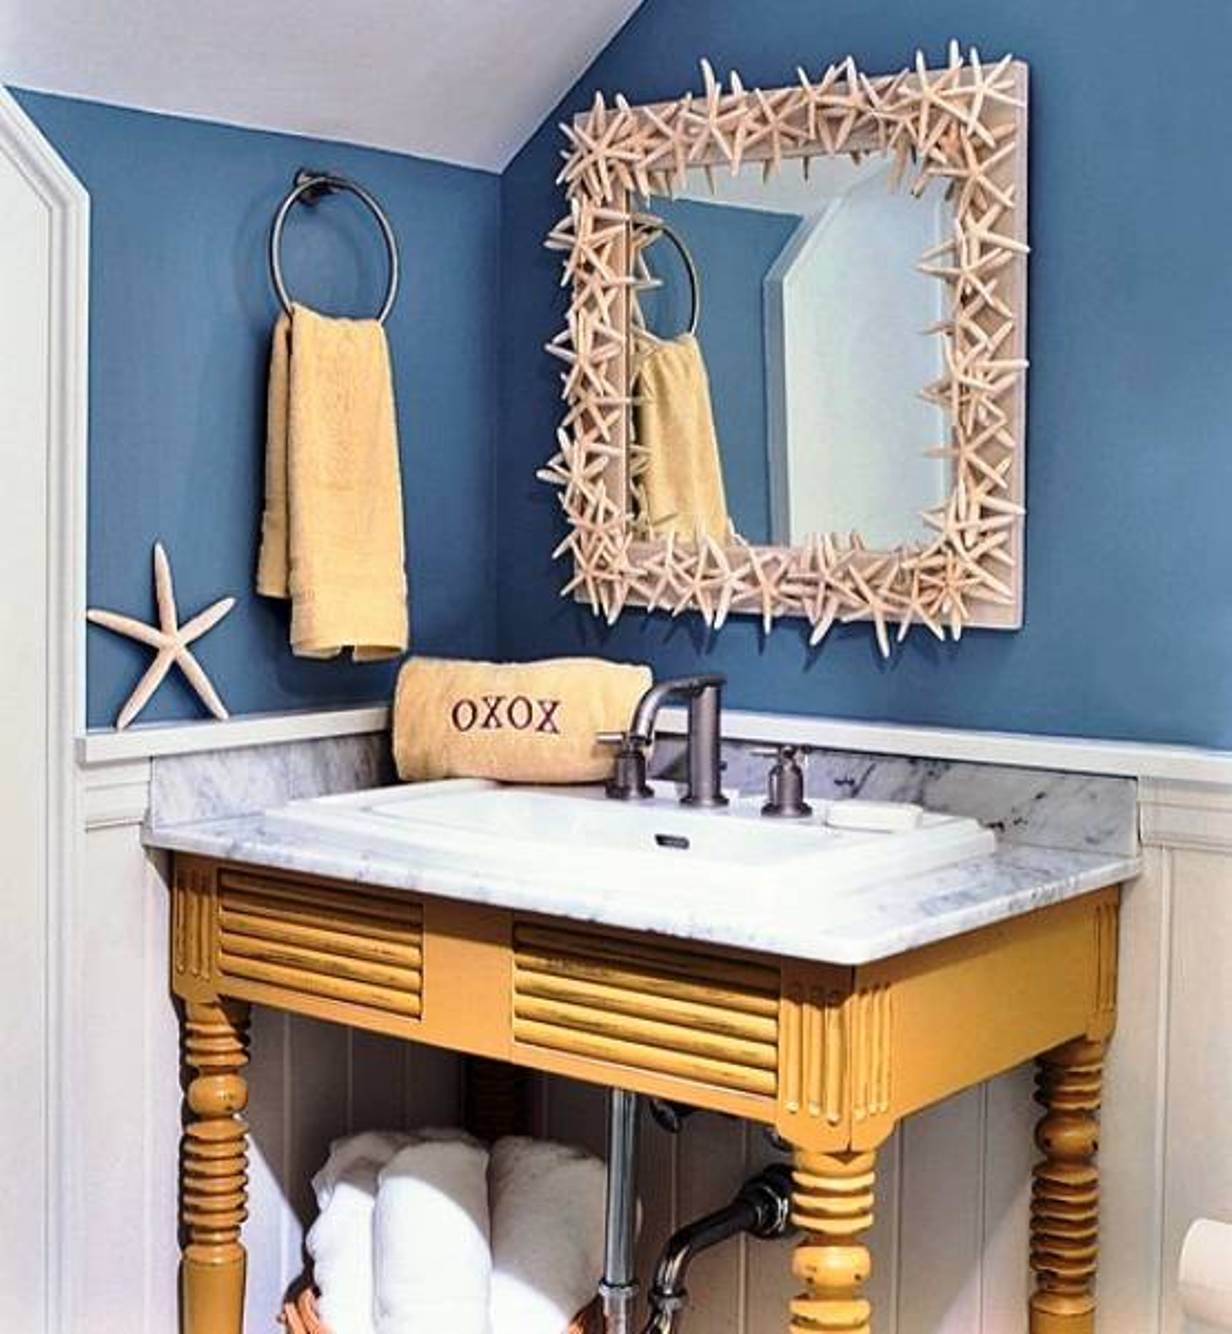 Image of: starfish wall decor bathroom